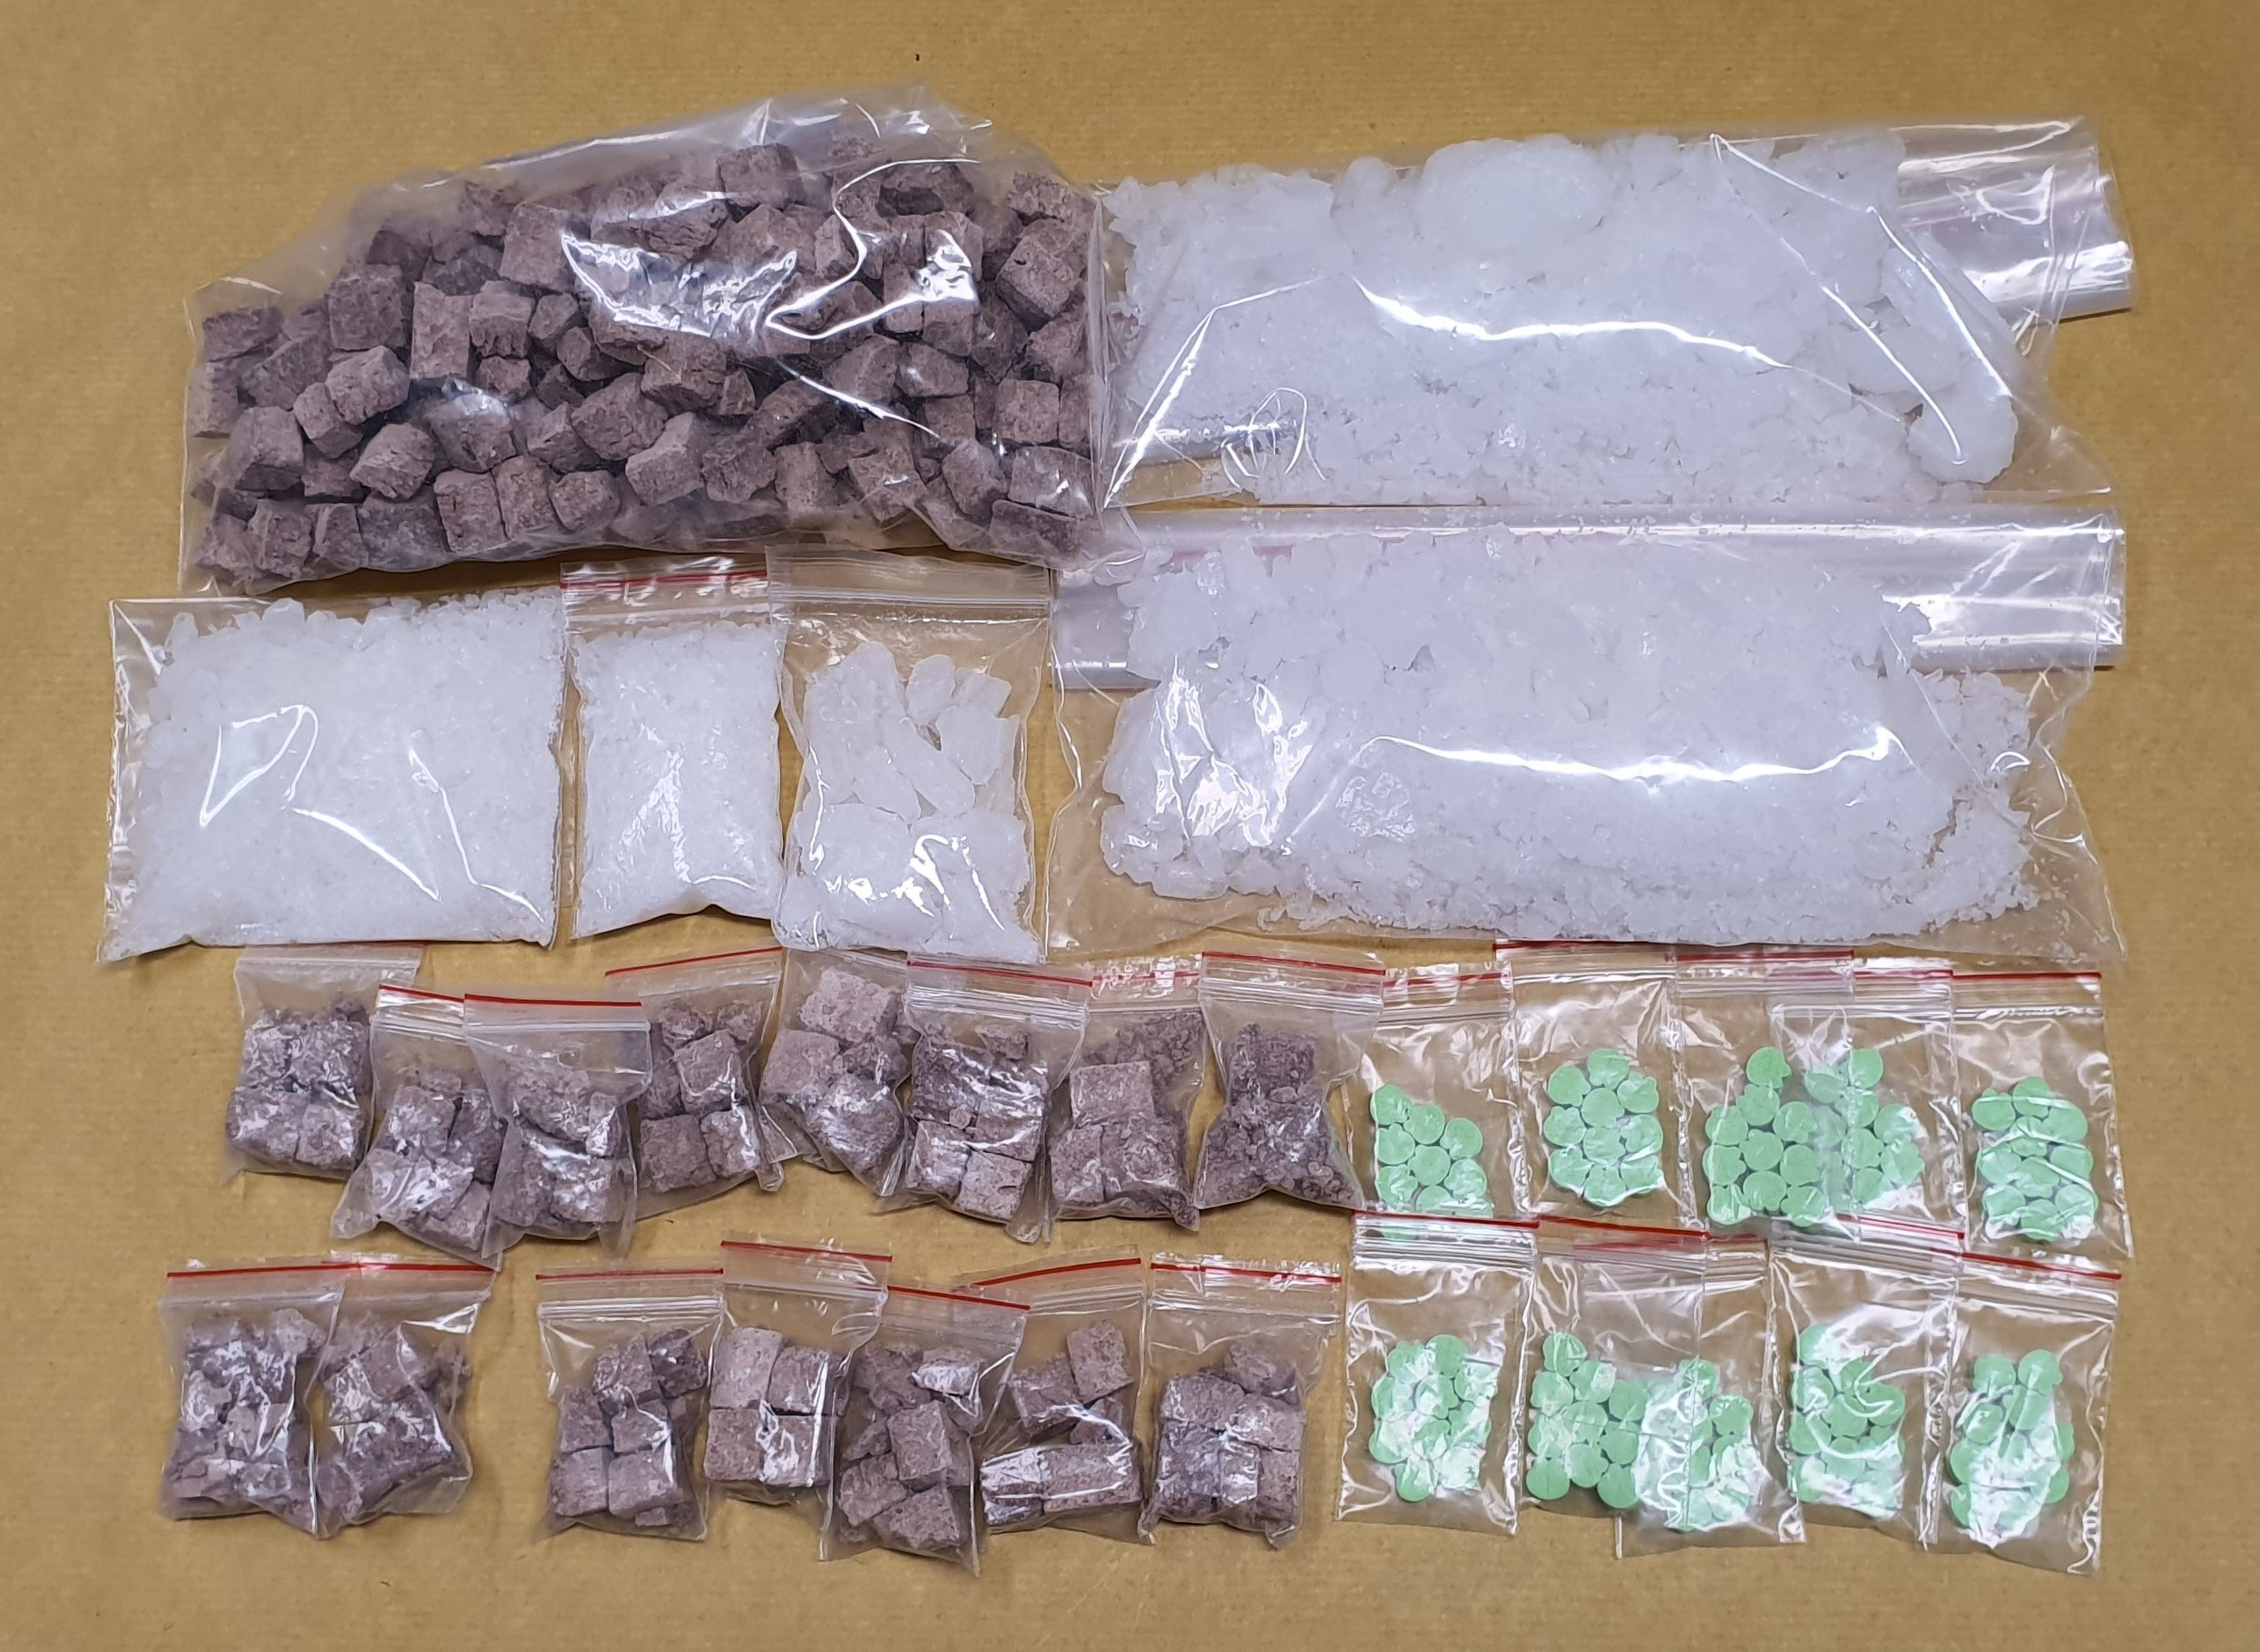 Some of the drugs seized in CNB operation on 11 February 2020